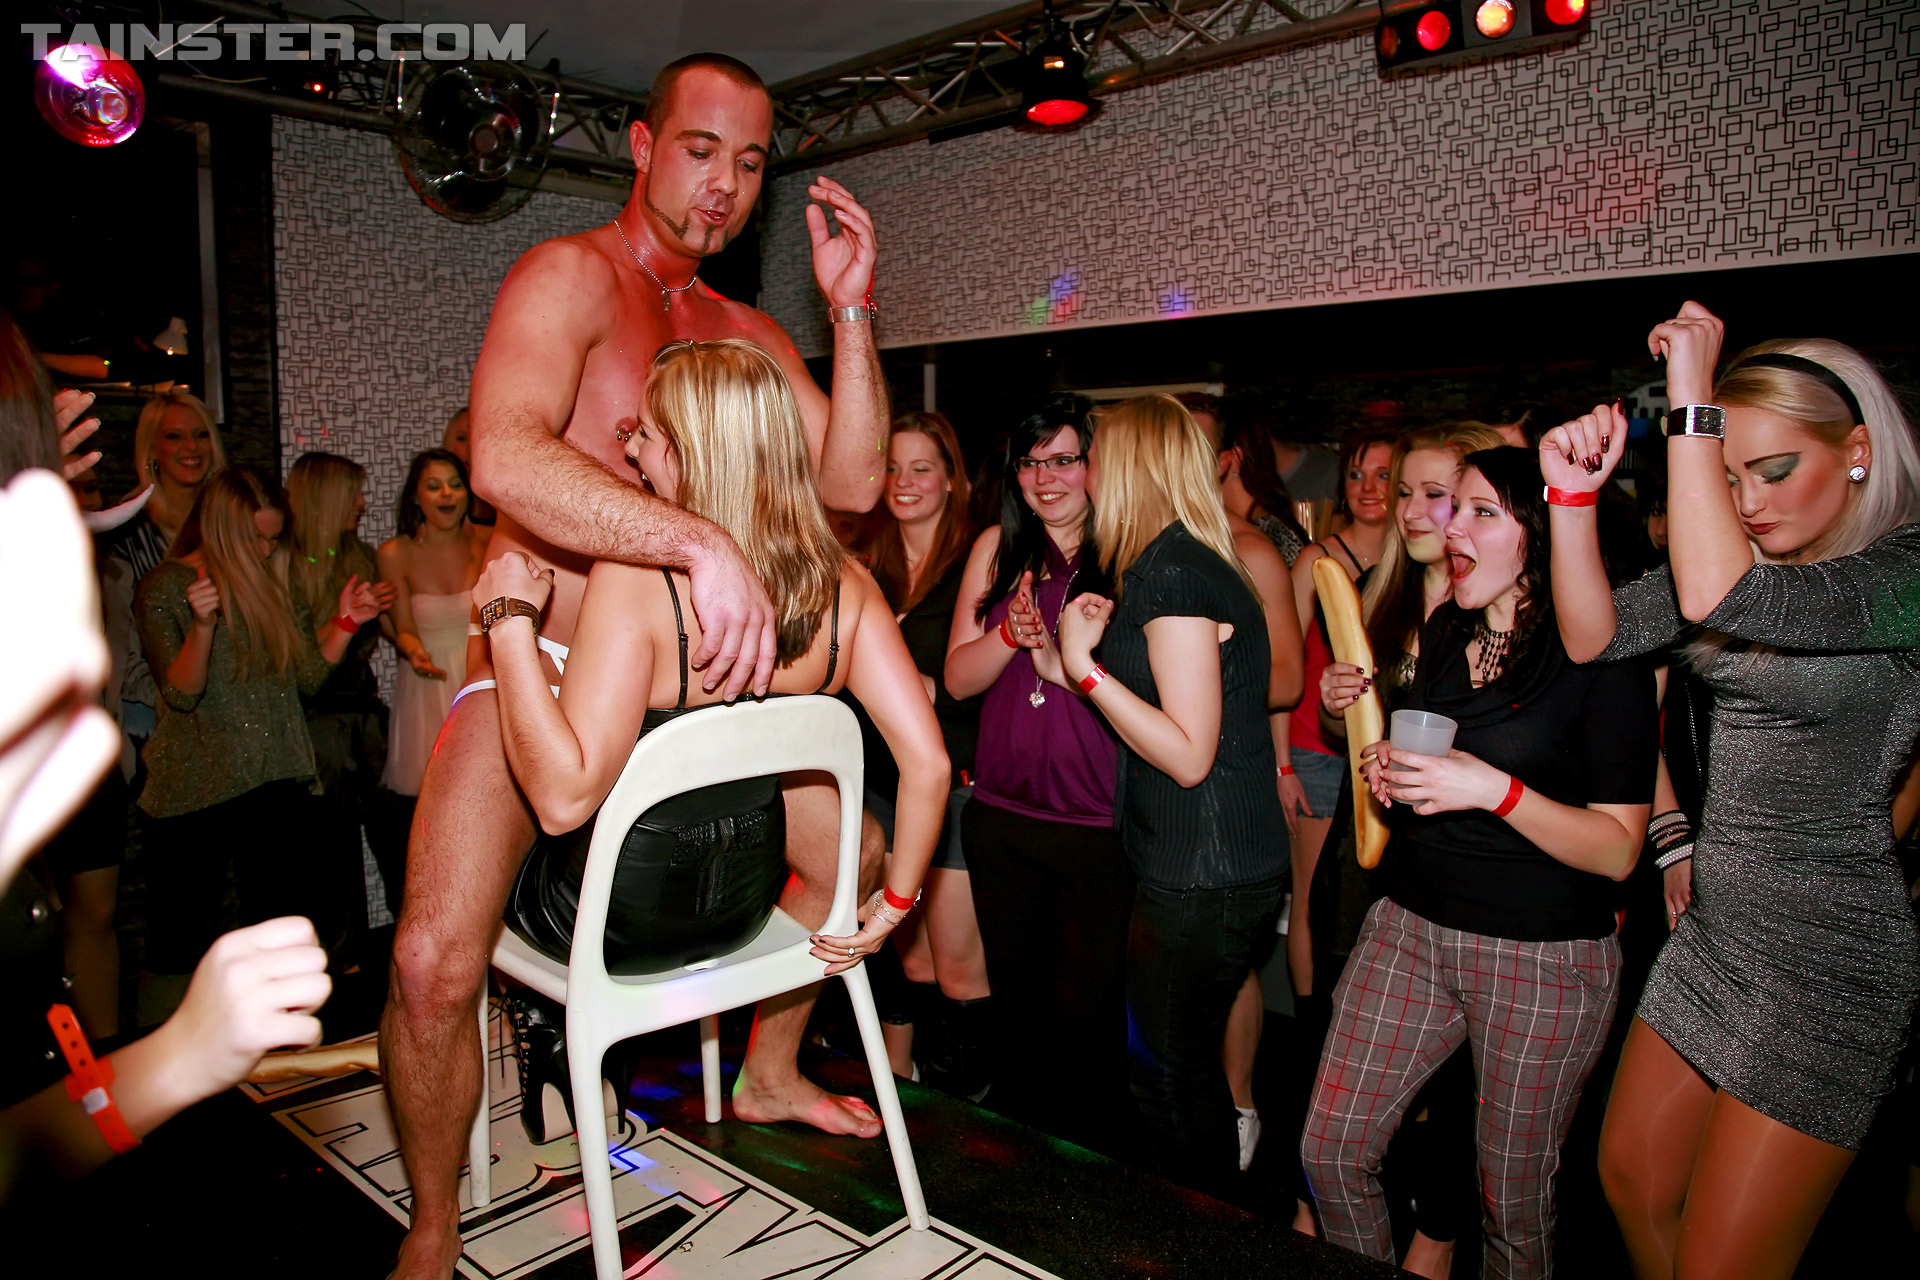 Amusing Female strippers on stage